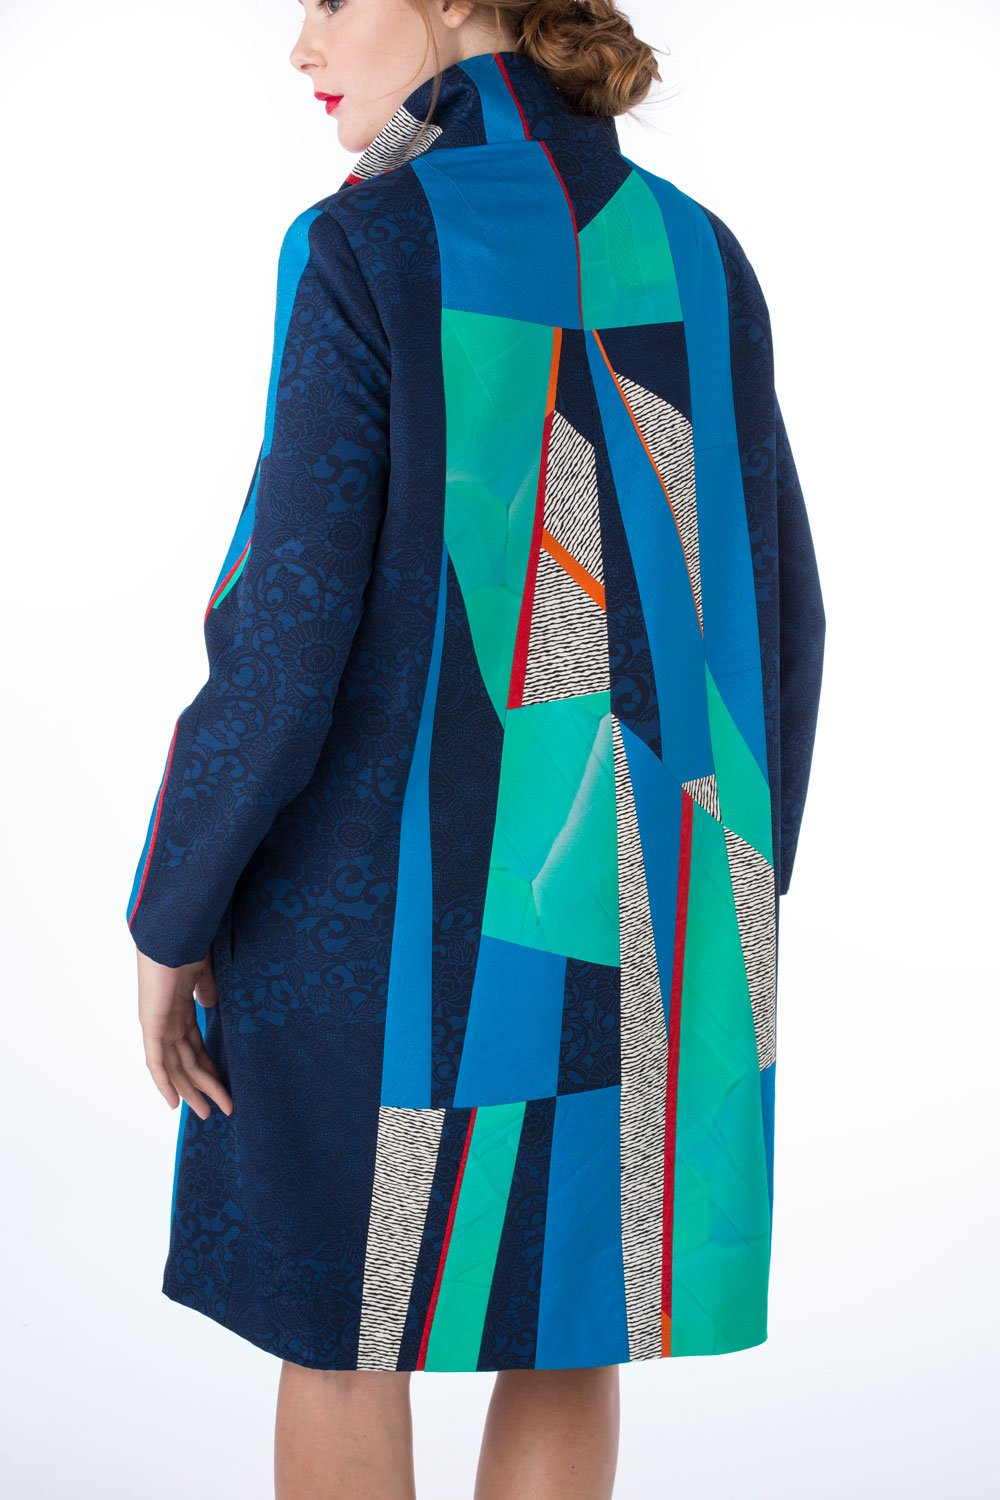 Avenue detail—Coat—Pieced vintage Japanese kimono silk | Ann Williamson Designs